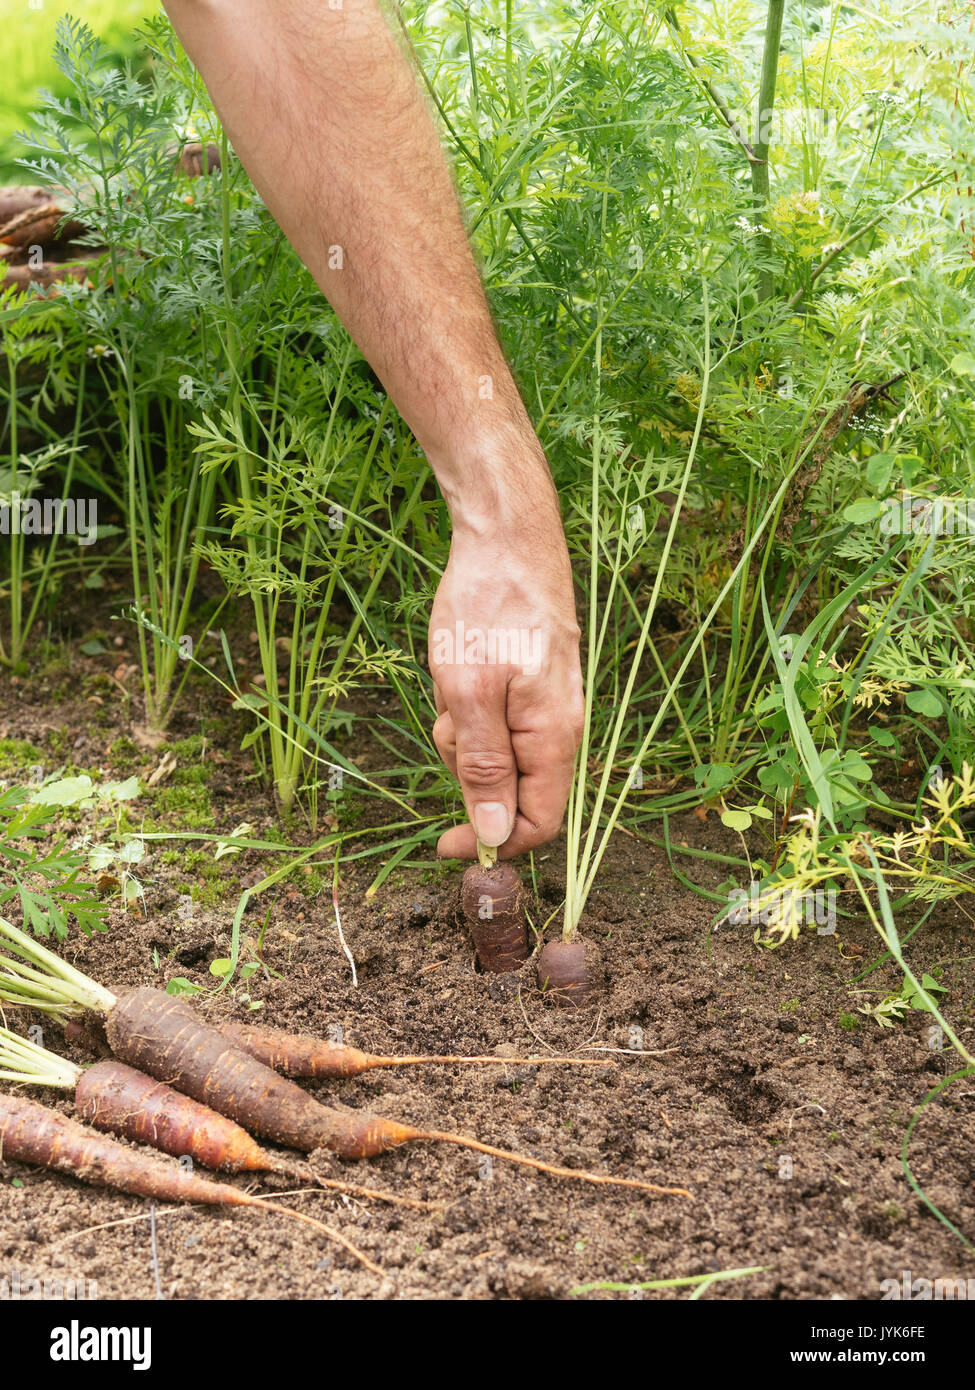 Gardener harvesting purple carrots - Stock Image